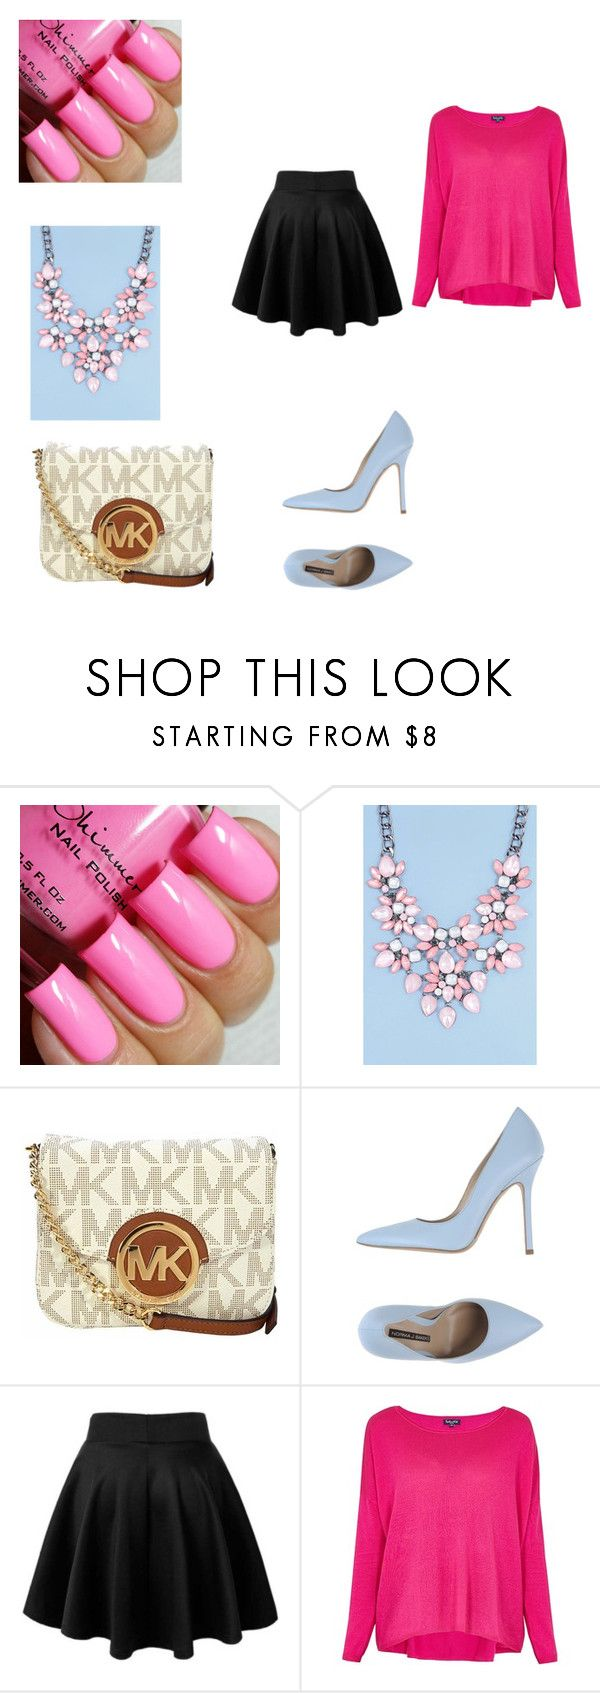 """Career Ready"" by diovion-doakes on Polyvore featuring Boohoo, Michael Kors, Norma J.Baker, Splendid, women's clothing, women's fashion, women, female, woman and misses"